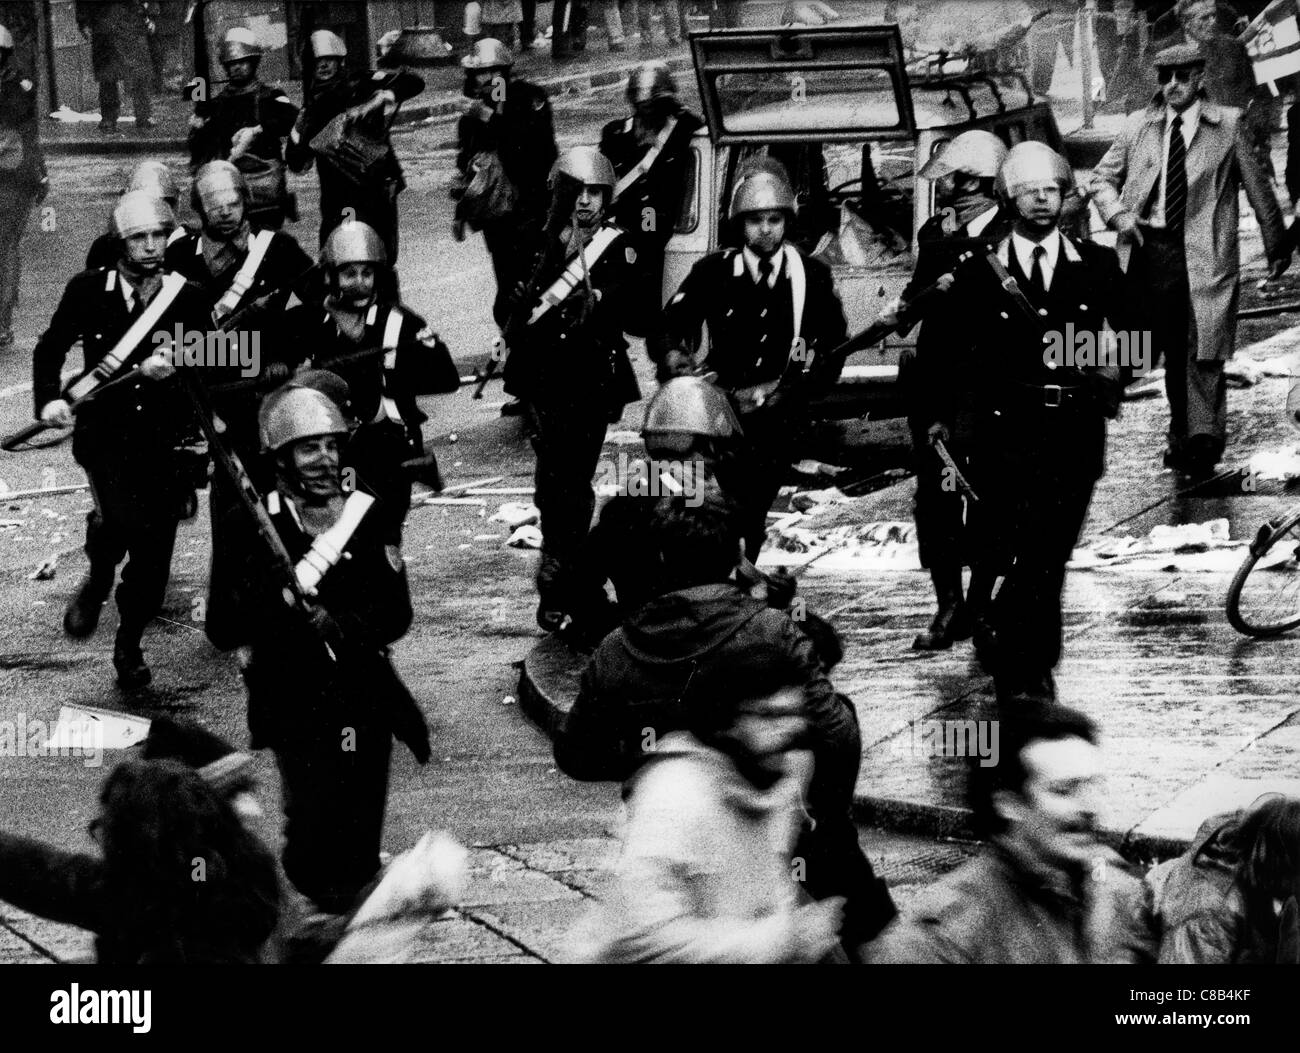 charge of the carabinieri,1979 - Stock Image